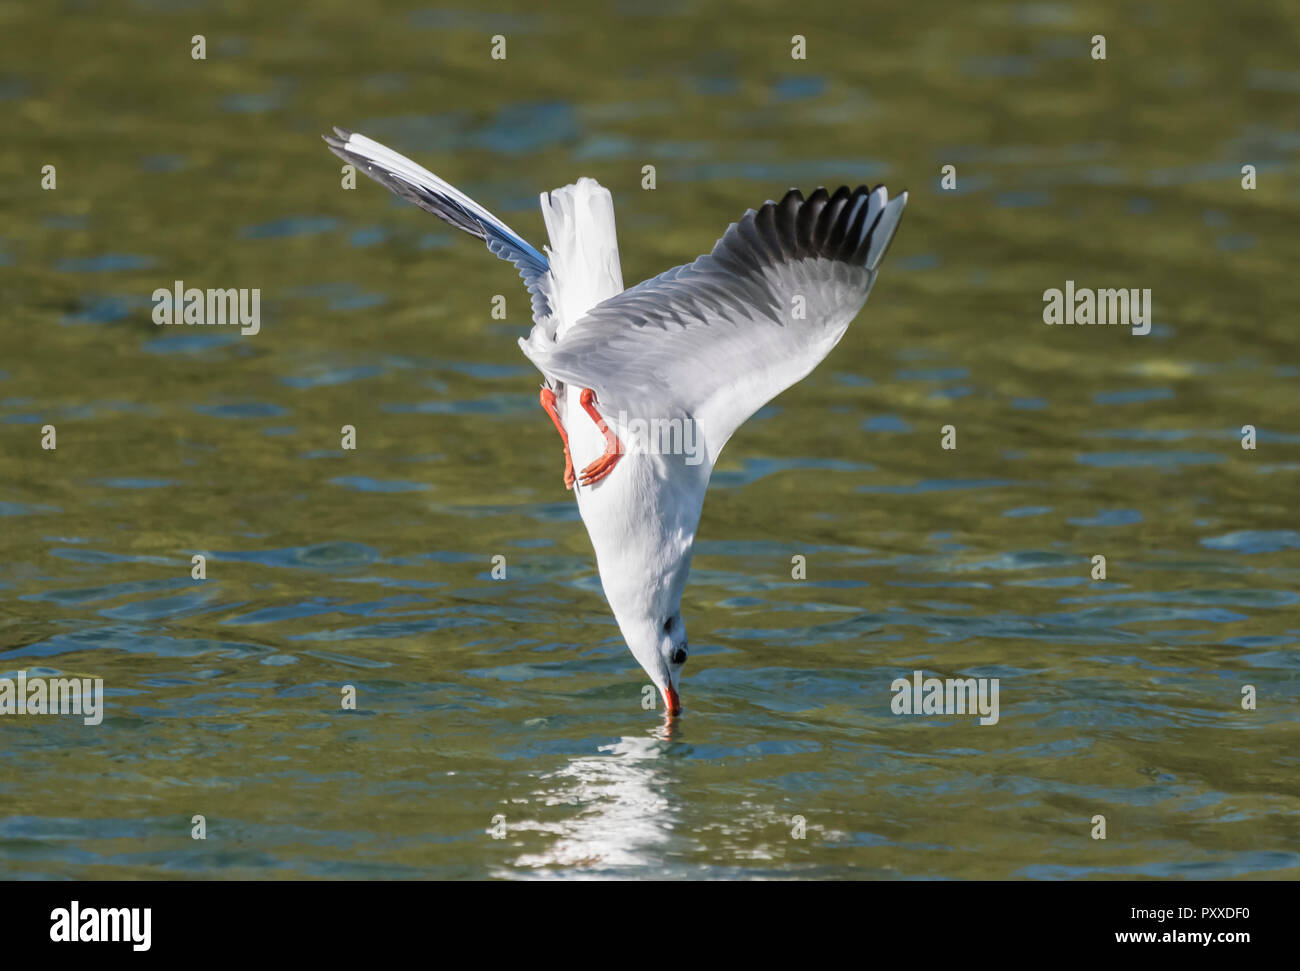 Black-Headed Gull (Chroicocephalus ridibundus) diving into water in Autumn in West Sussex, England, UK. - Stock Image